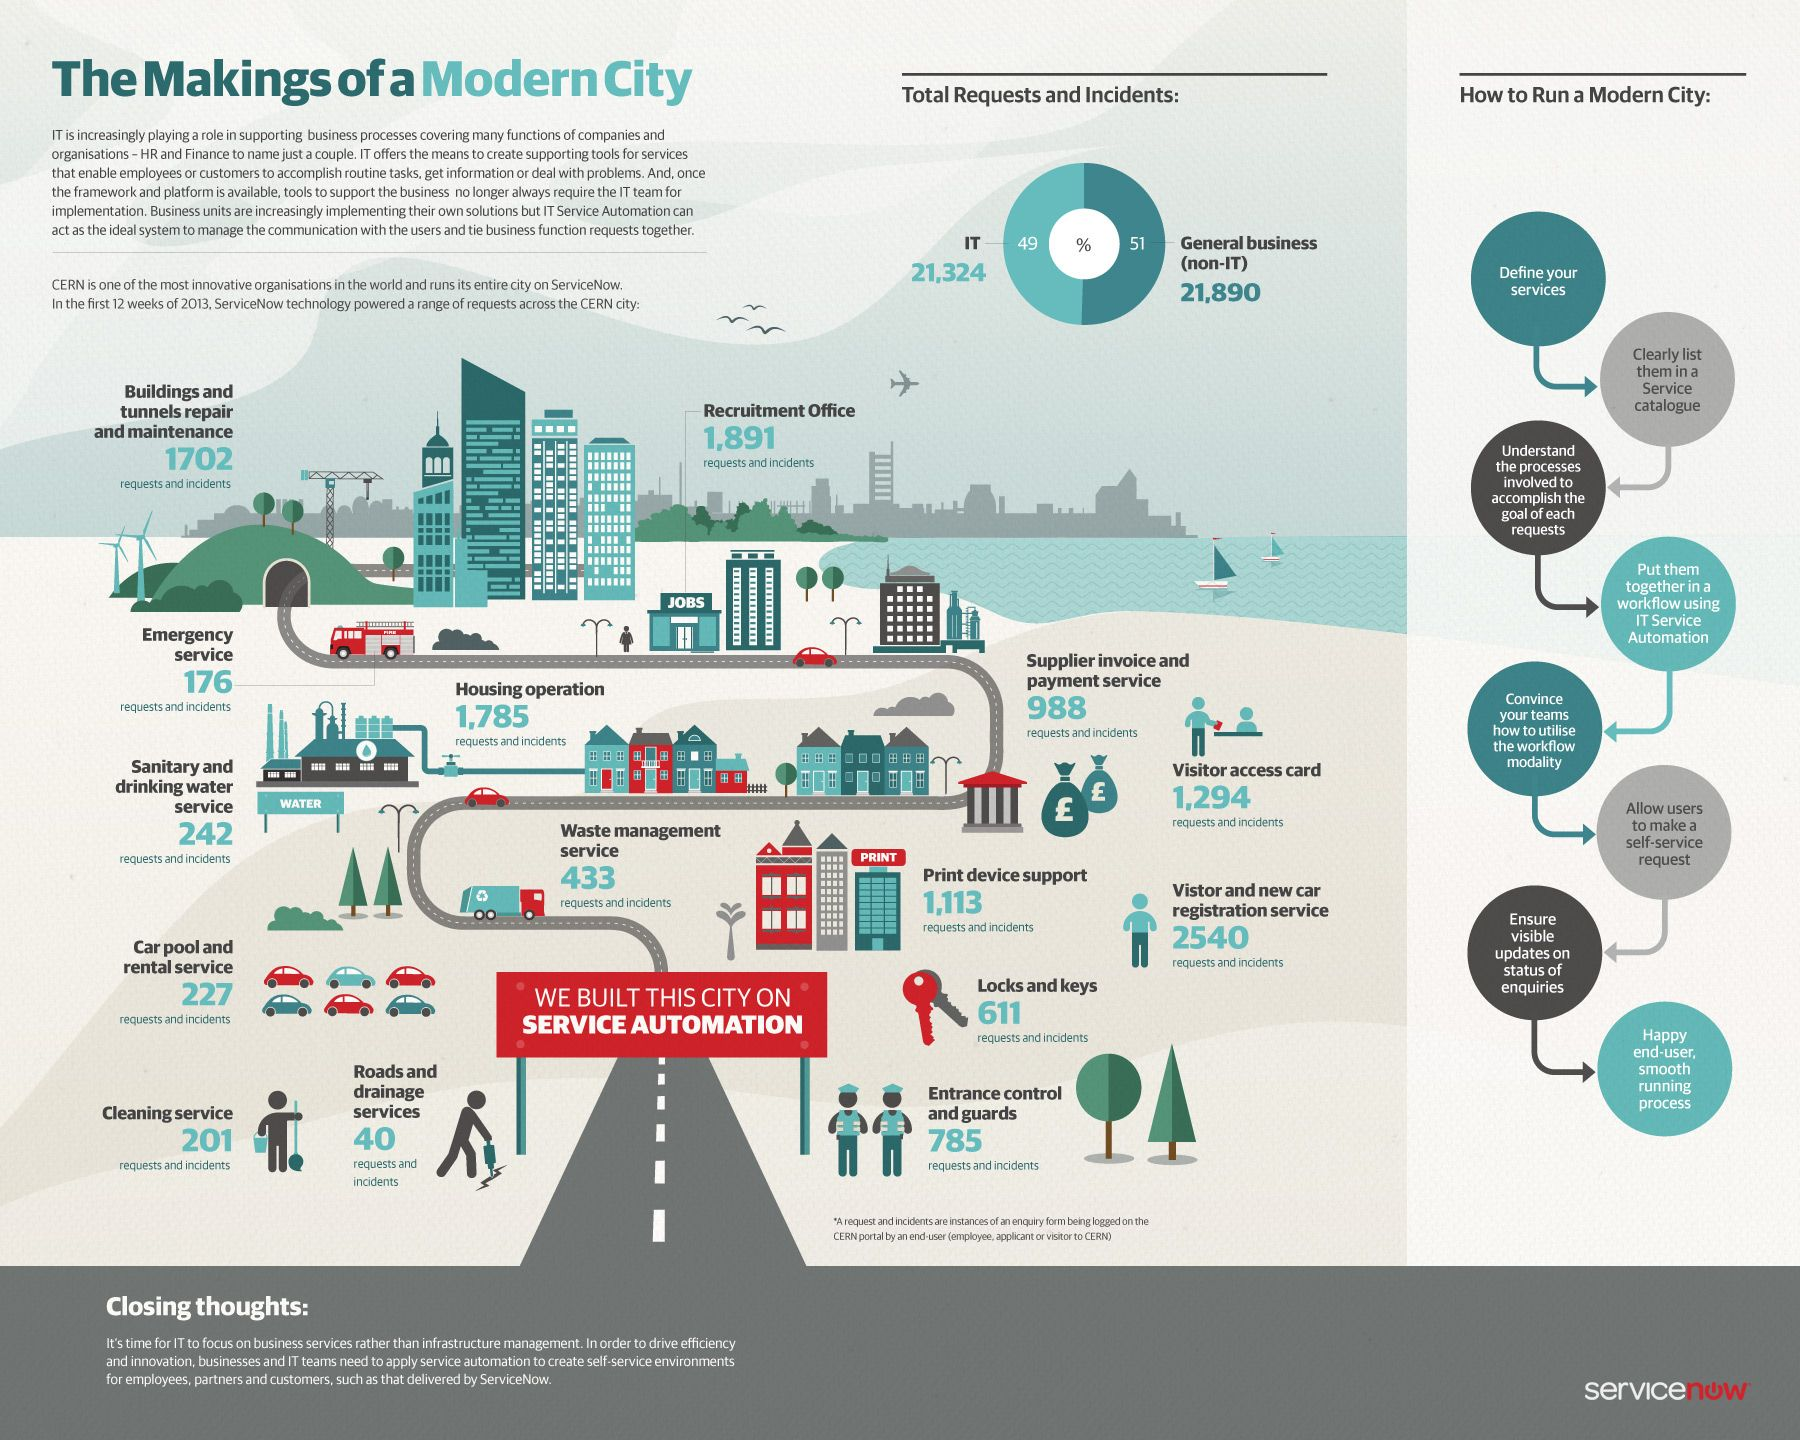 Pin By Xiangyu Wang On Flowchart 1 In 2020 Infographic Enterprise Architecture Modern City